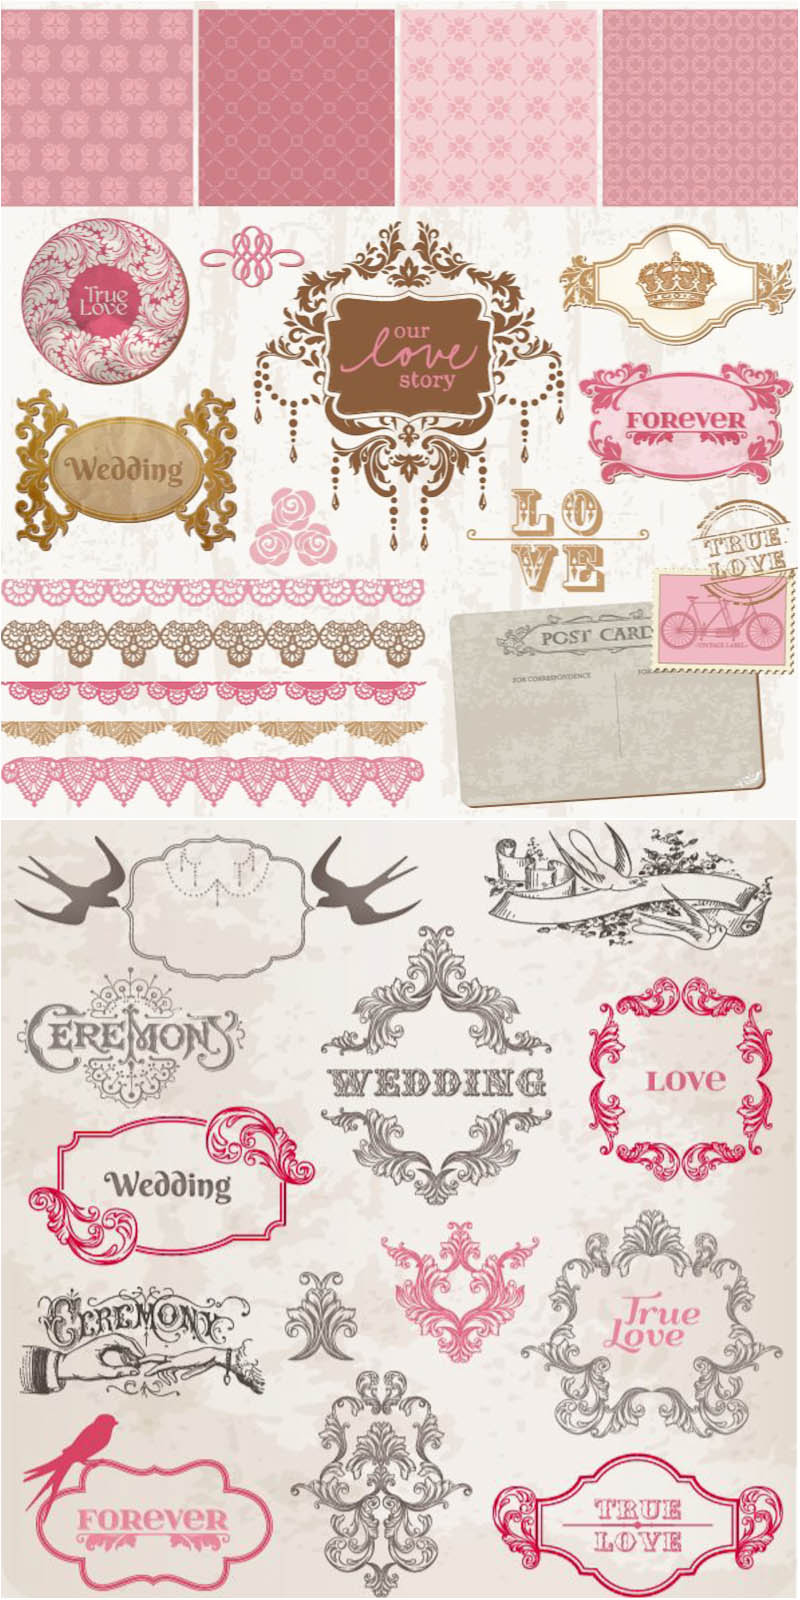 Wedding decorative frames and borders vector free download wedding decorative frames and borders vector junglespirit Images